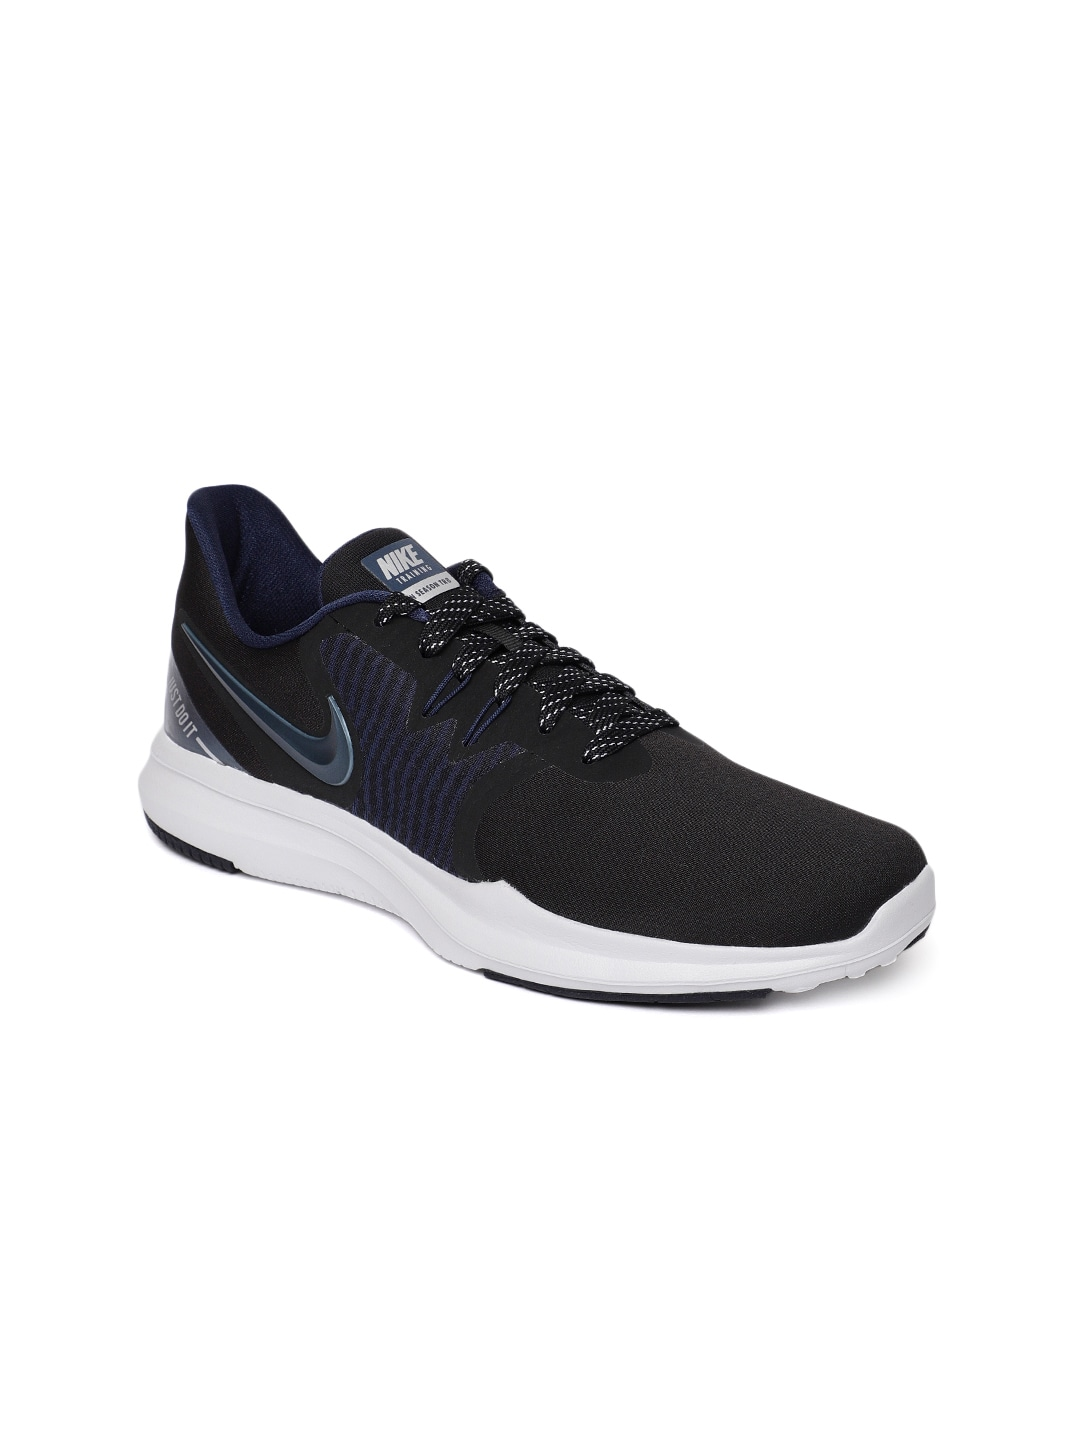 c94f356409b8b Nike - Shop for Nike Apparels Online in India